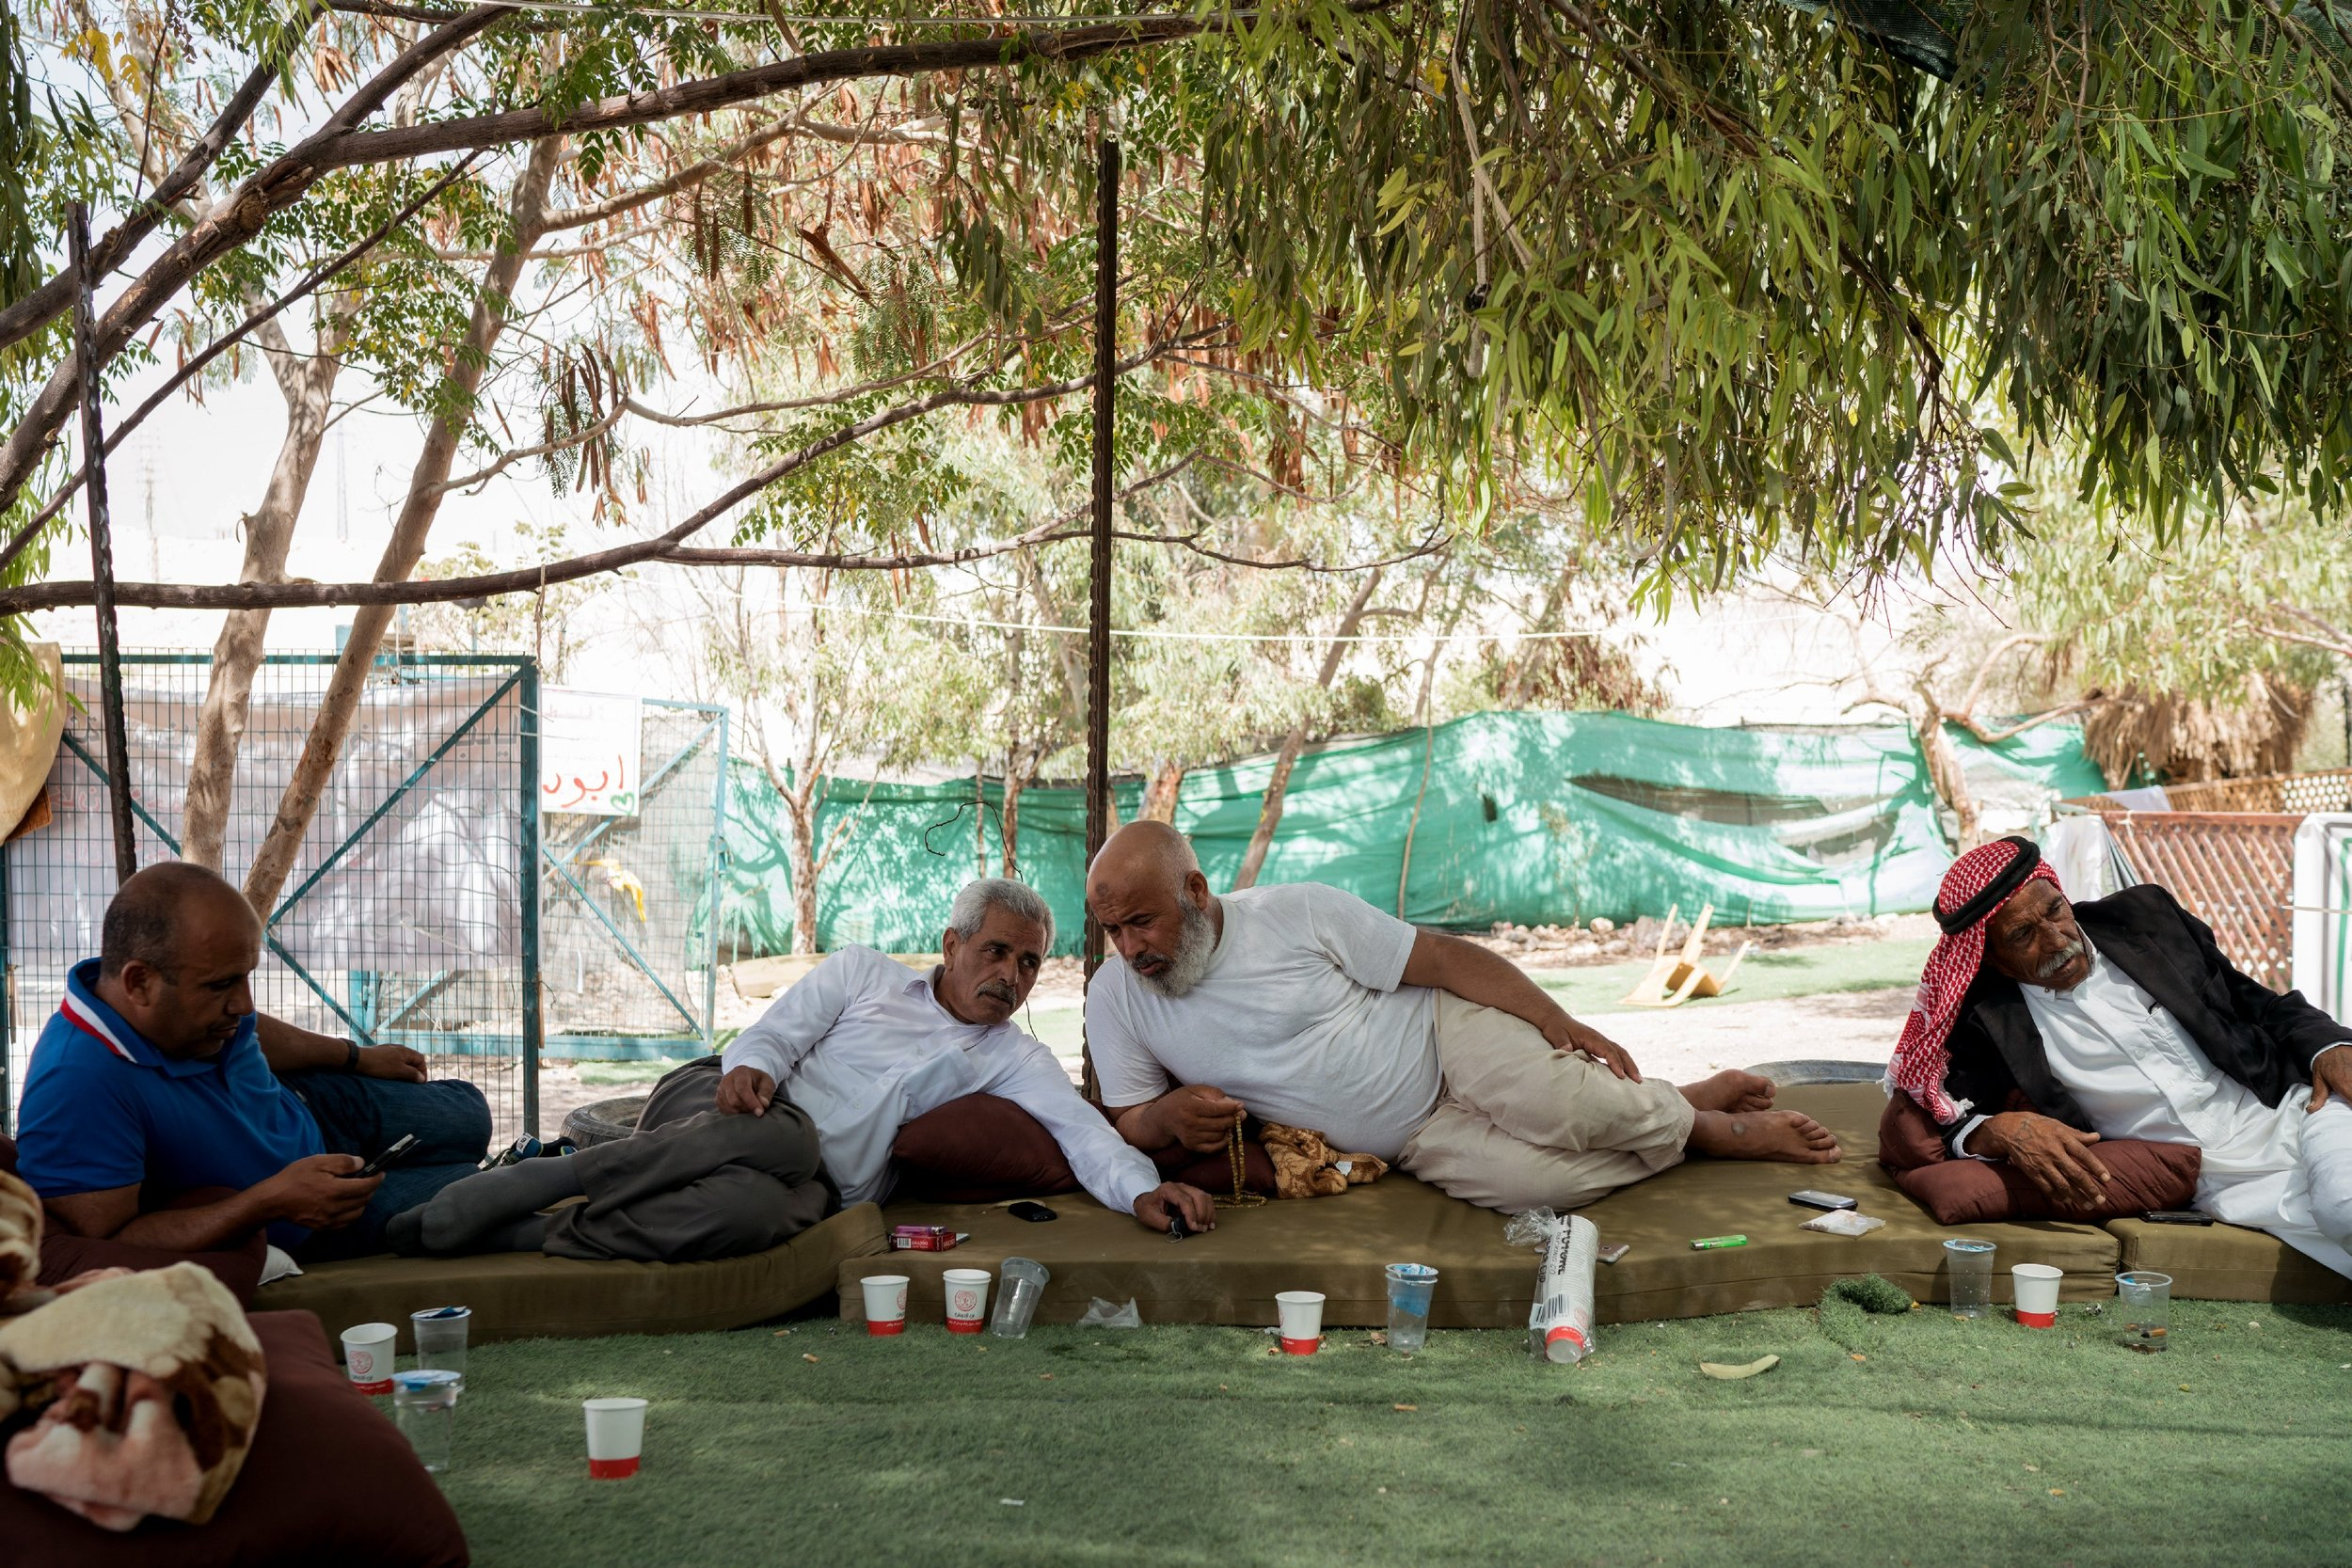 Palestinian Bedouin men sit together in Khan al-Ahmar on July 26, 2018. Photo: Samar Hazboun for The Intercept